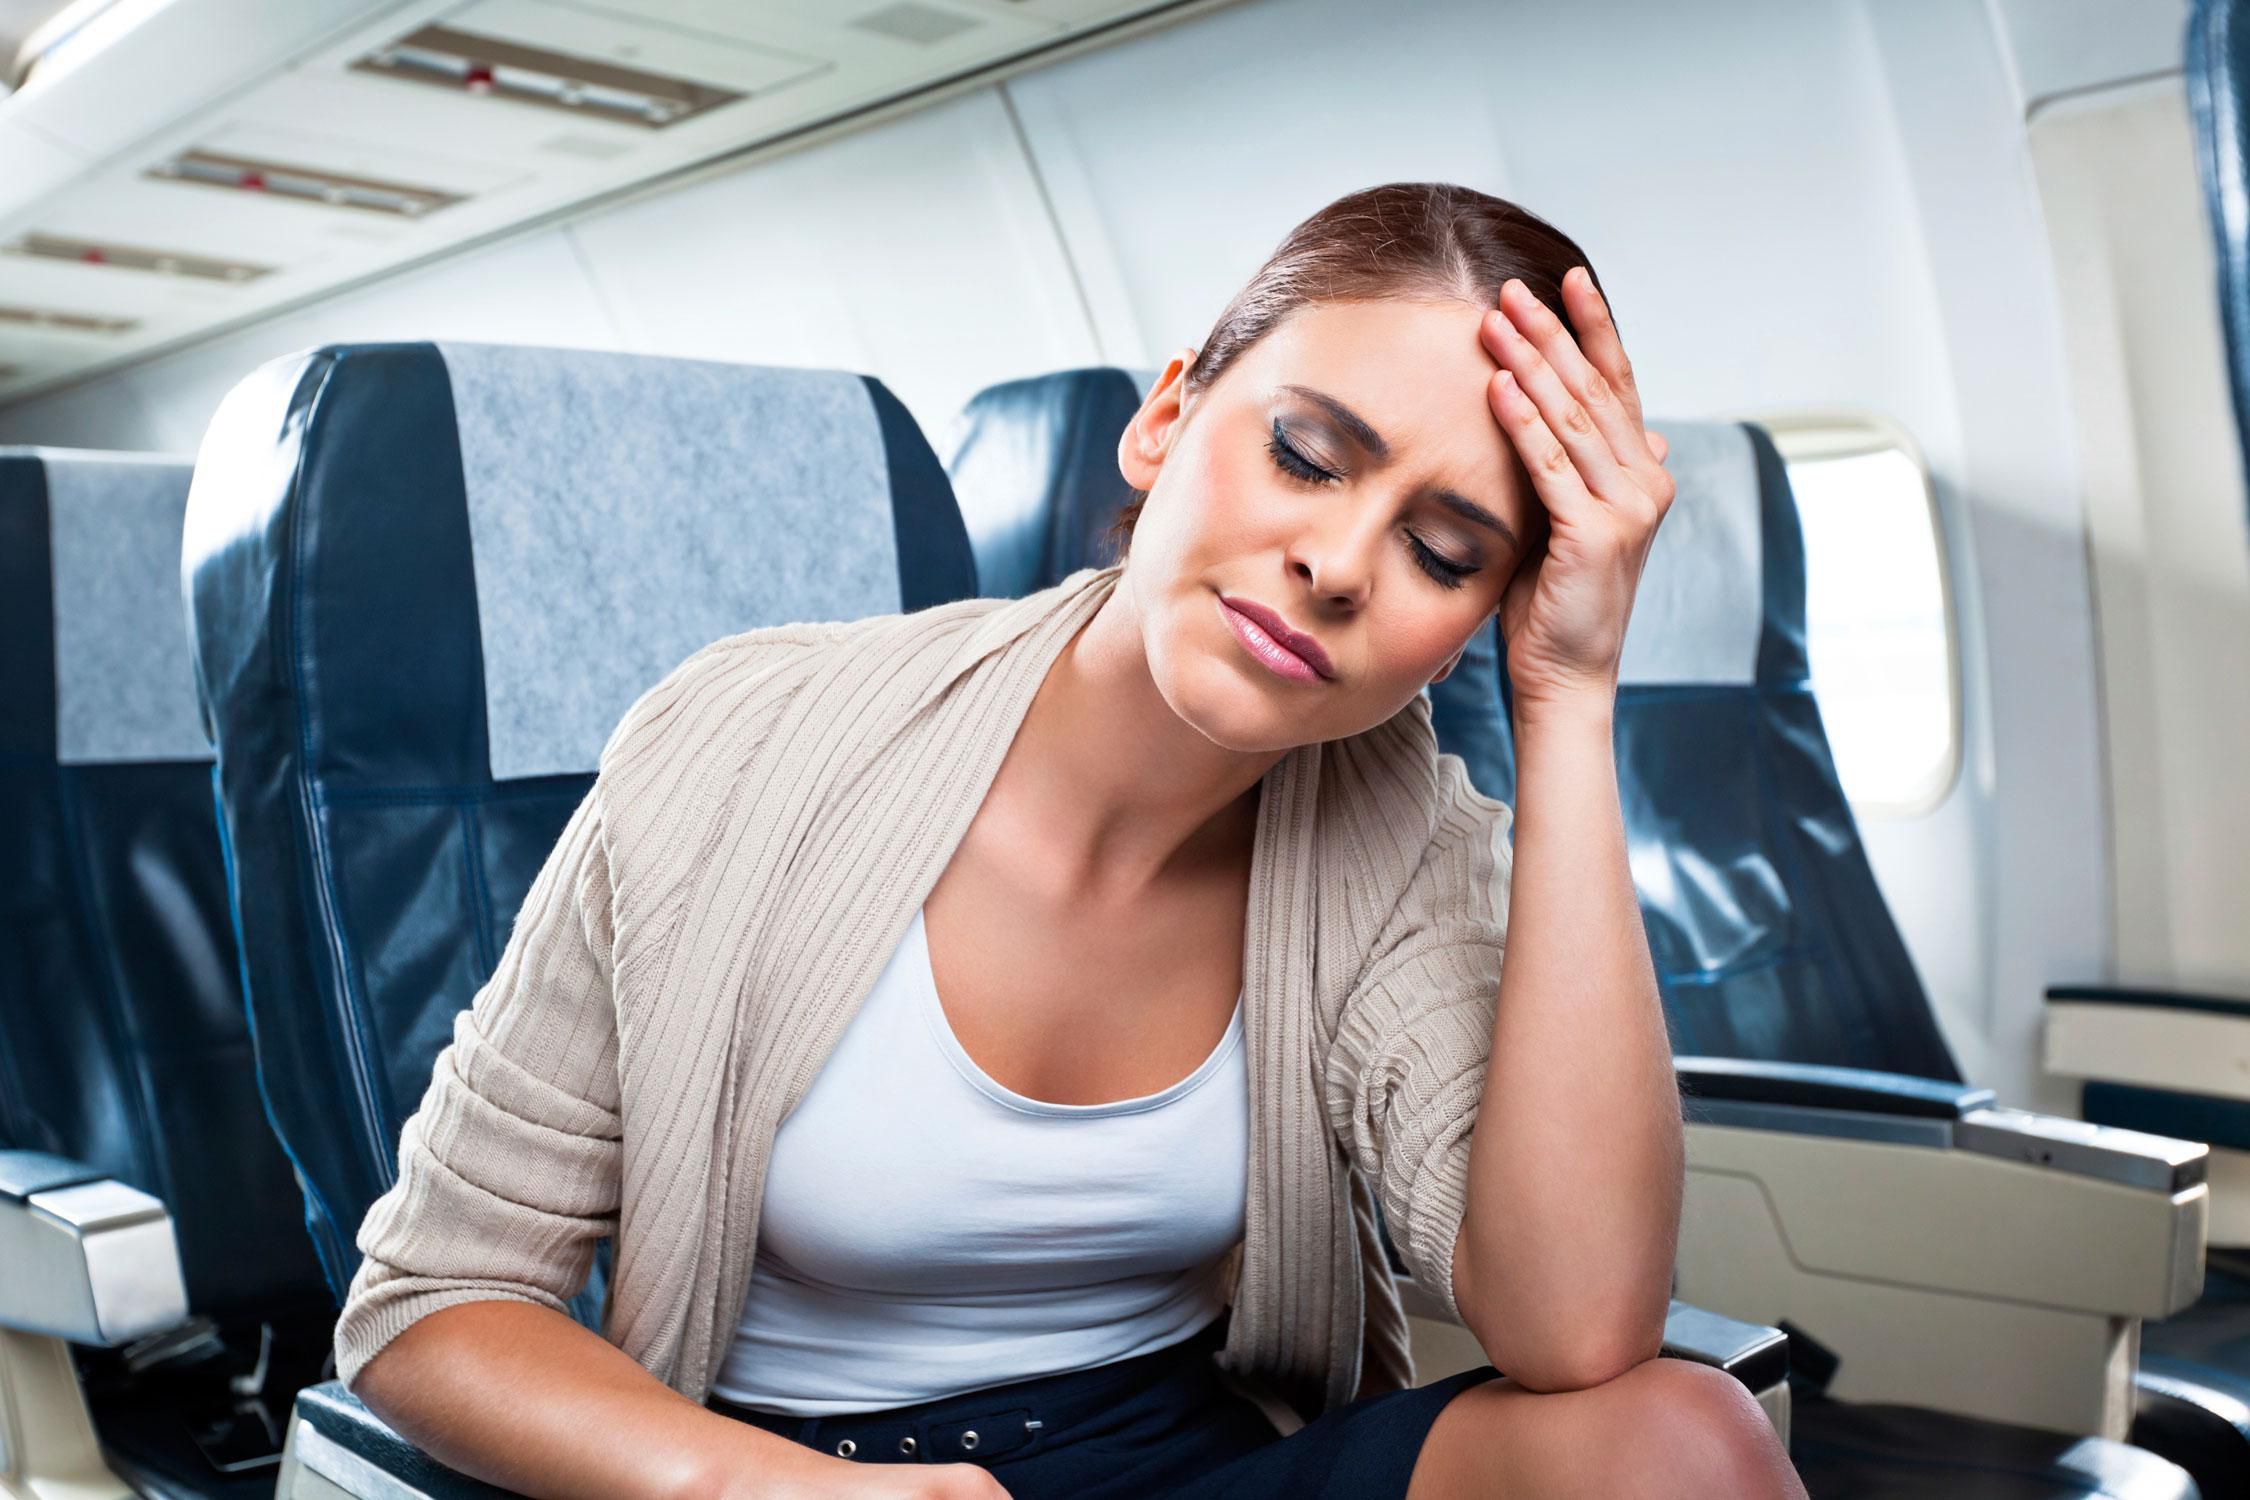 How to Prevent and Treat Motion Sickness While Flying